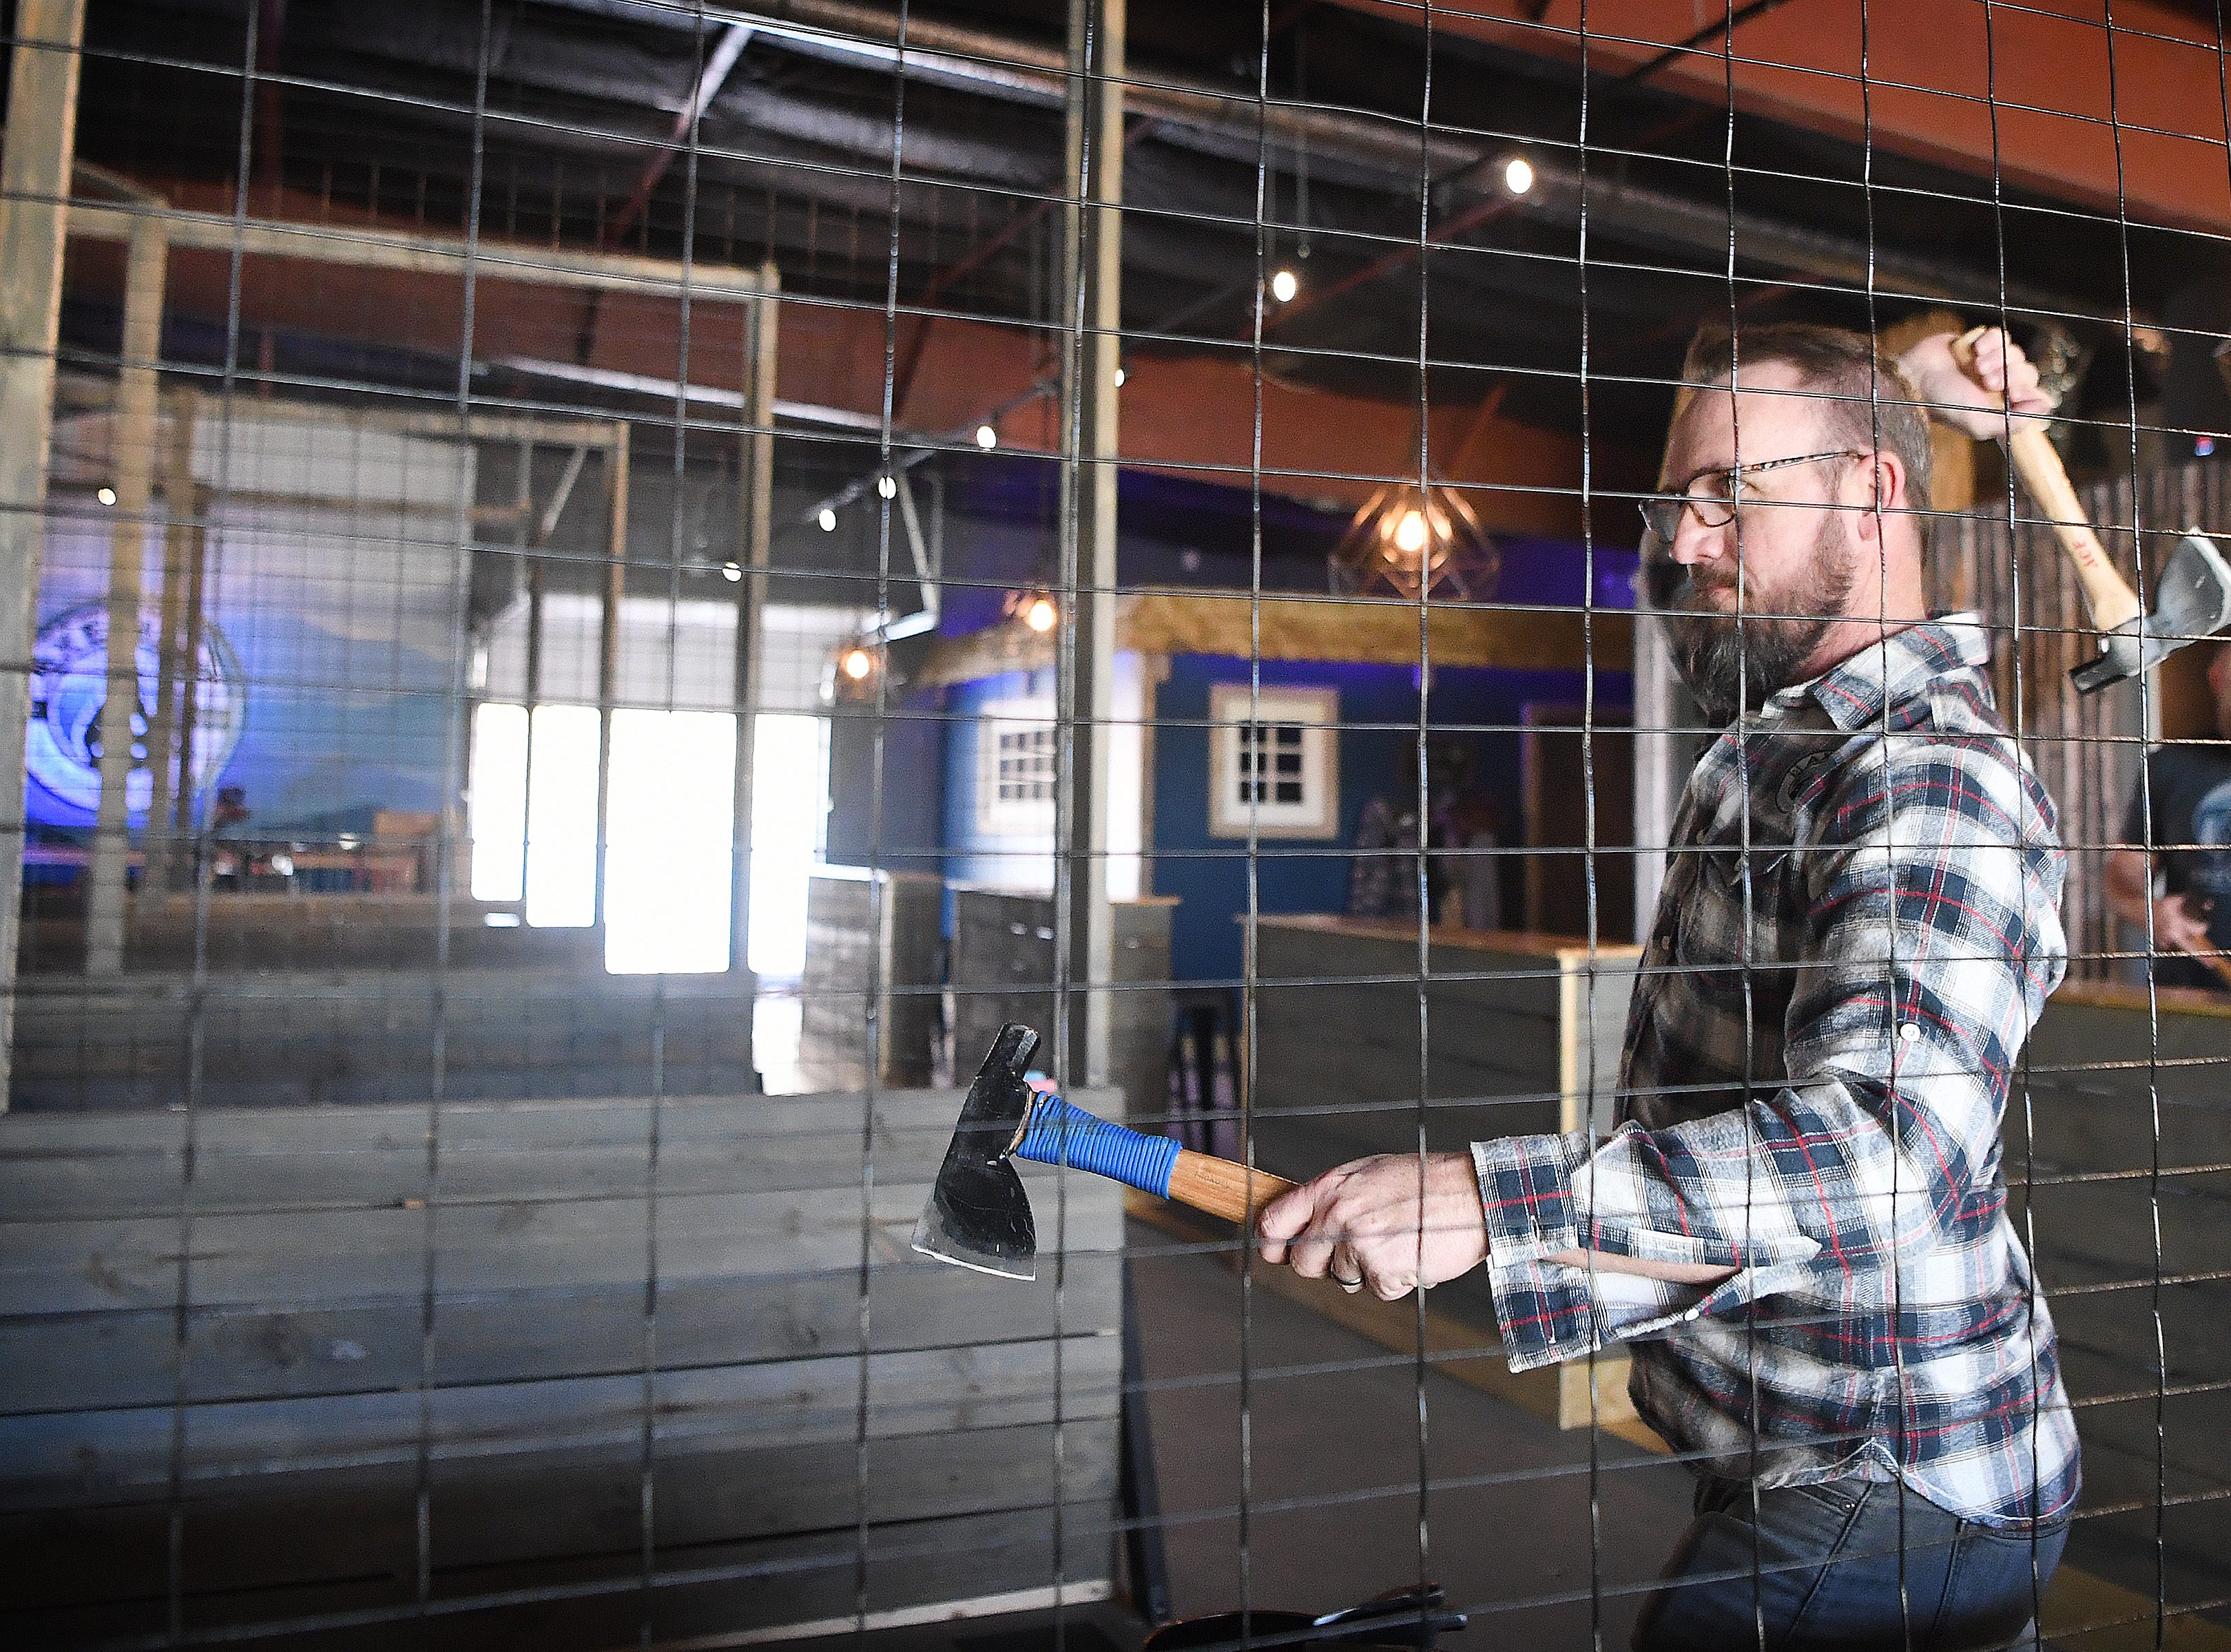 Axeville co-owner Ryan McClenny shows off his ax throwing skills at Axeville Throwing Club, Asheville's first ax throwing facility, which is planning to open to the public in March.  The club plans to be open Thursday and Friday evenings and most of the day on weekends.